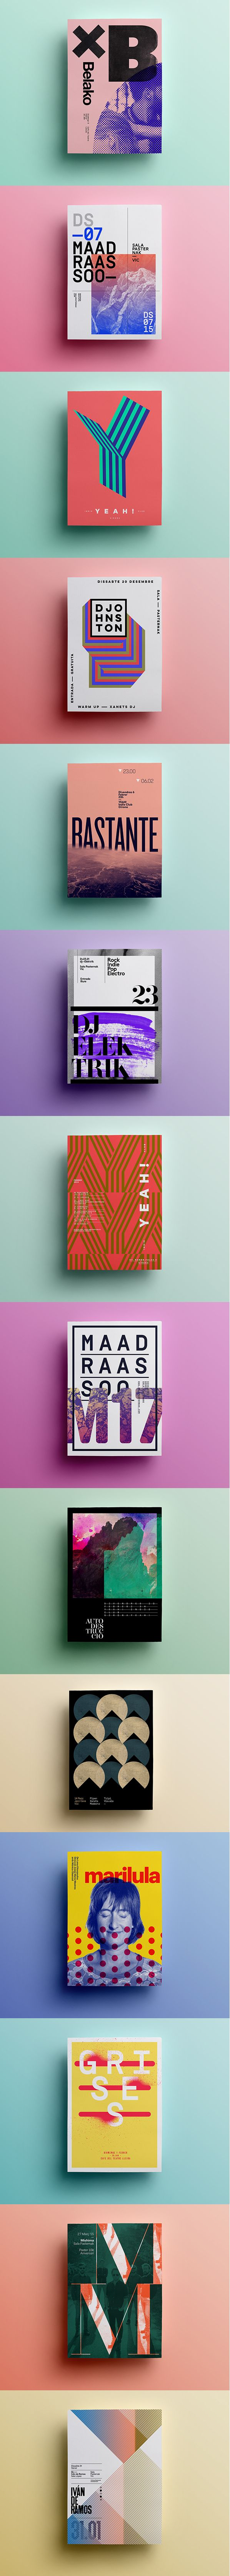 Posters 2015 on Behance